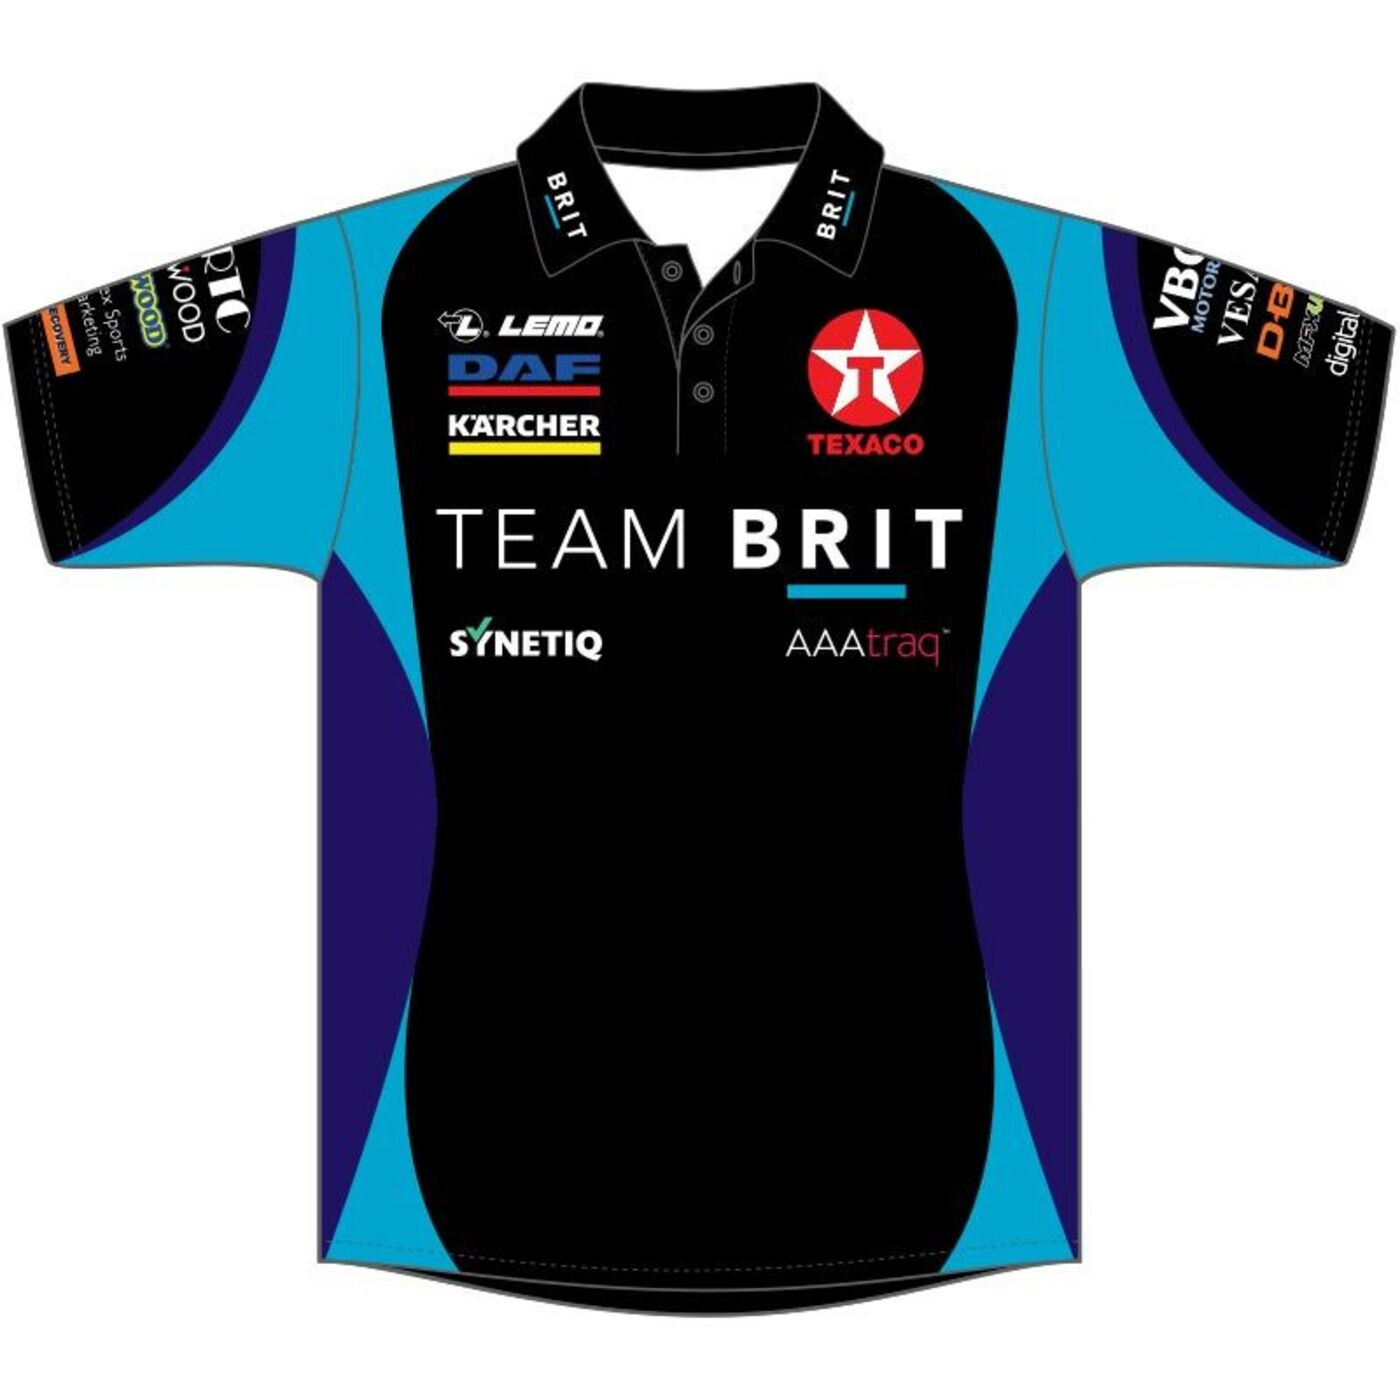 Work & Life: Team Brit - Driving Disability